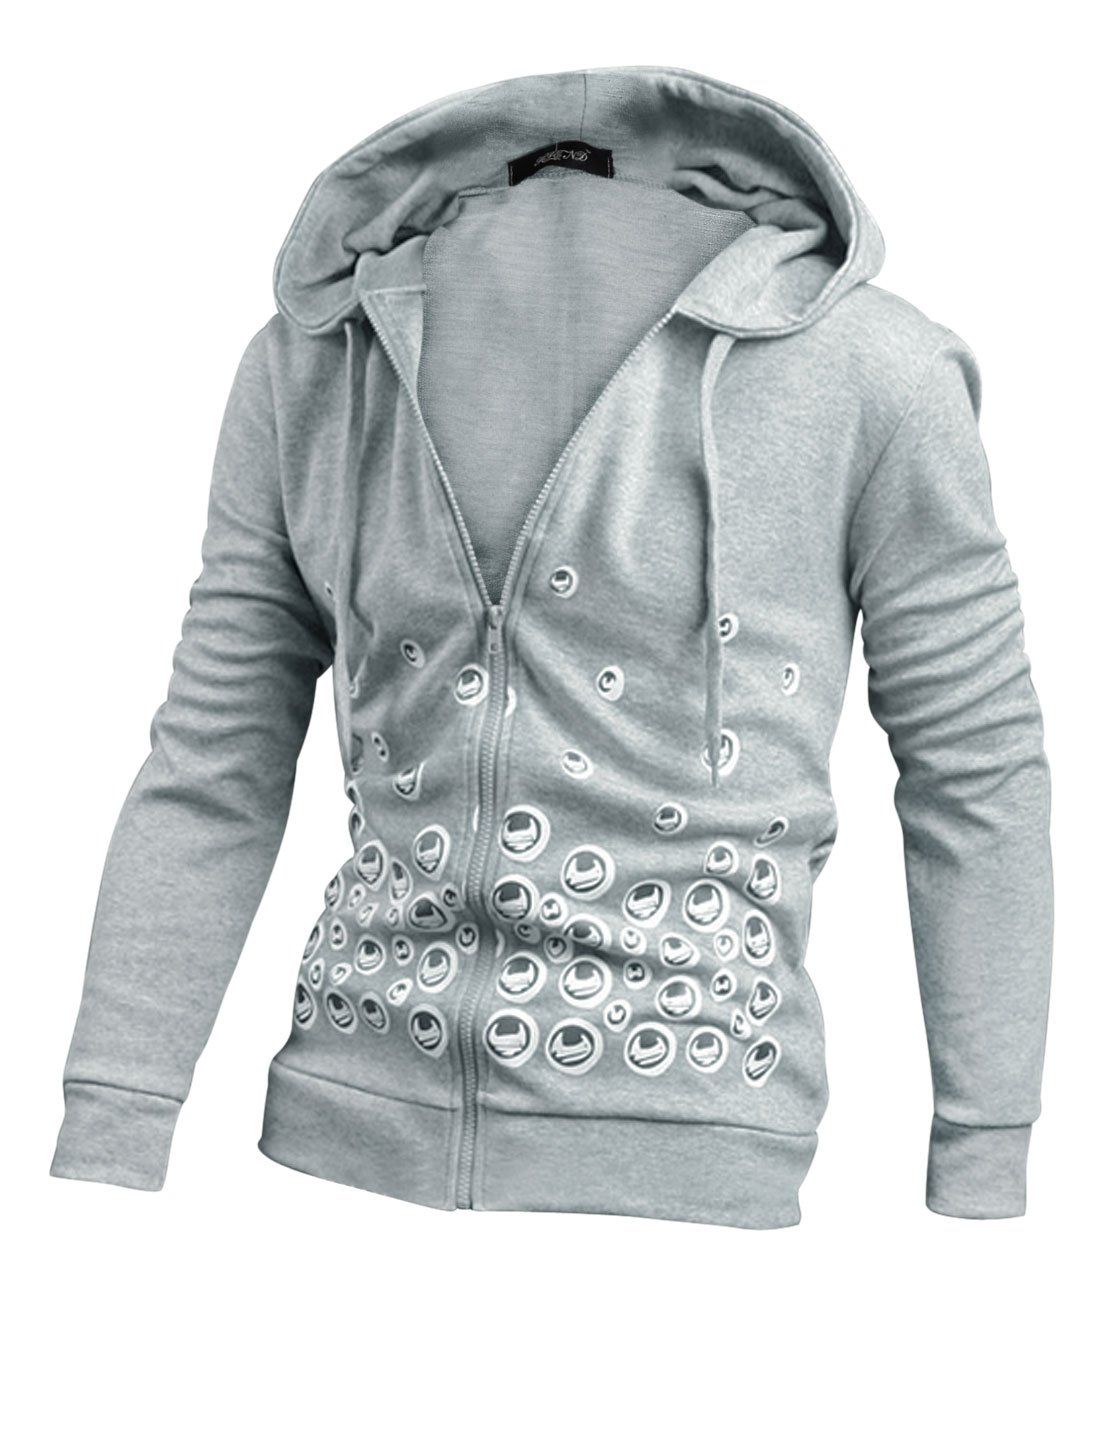 Men Light Gray Novelty Pattern Two Pockets Drawstring Zip Up Hoodie M